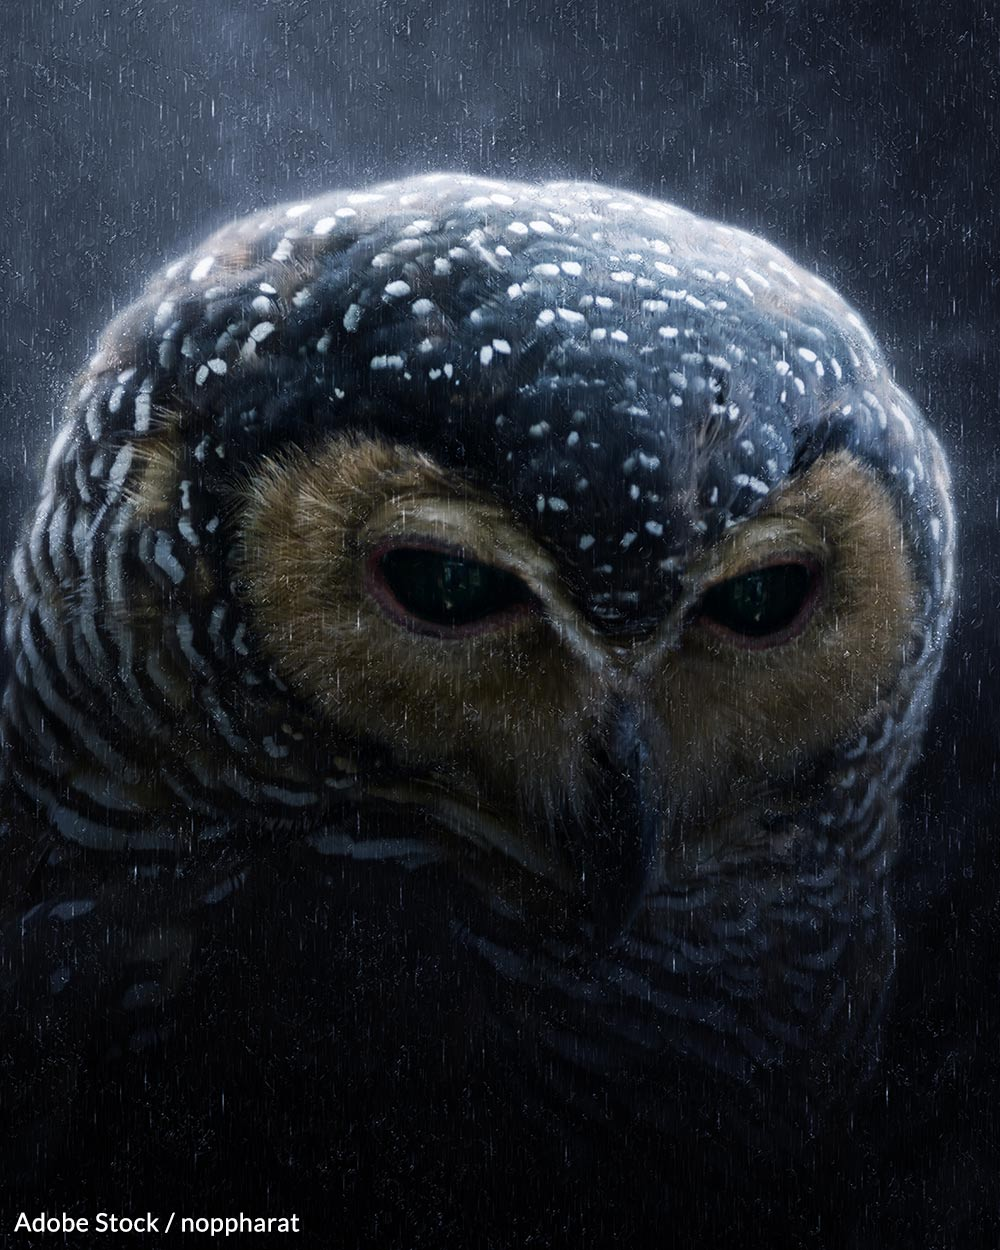 Without intervention, spotted owls could go extinct in a matter of decades.